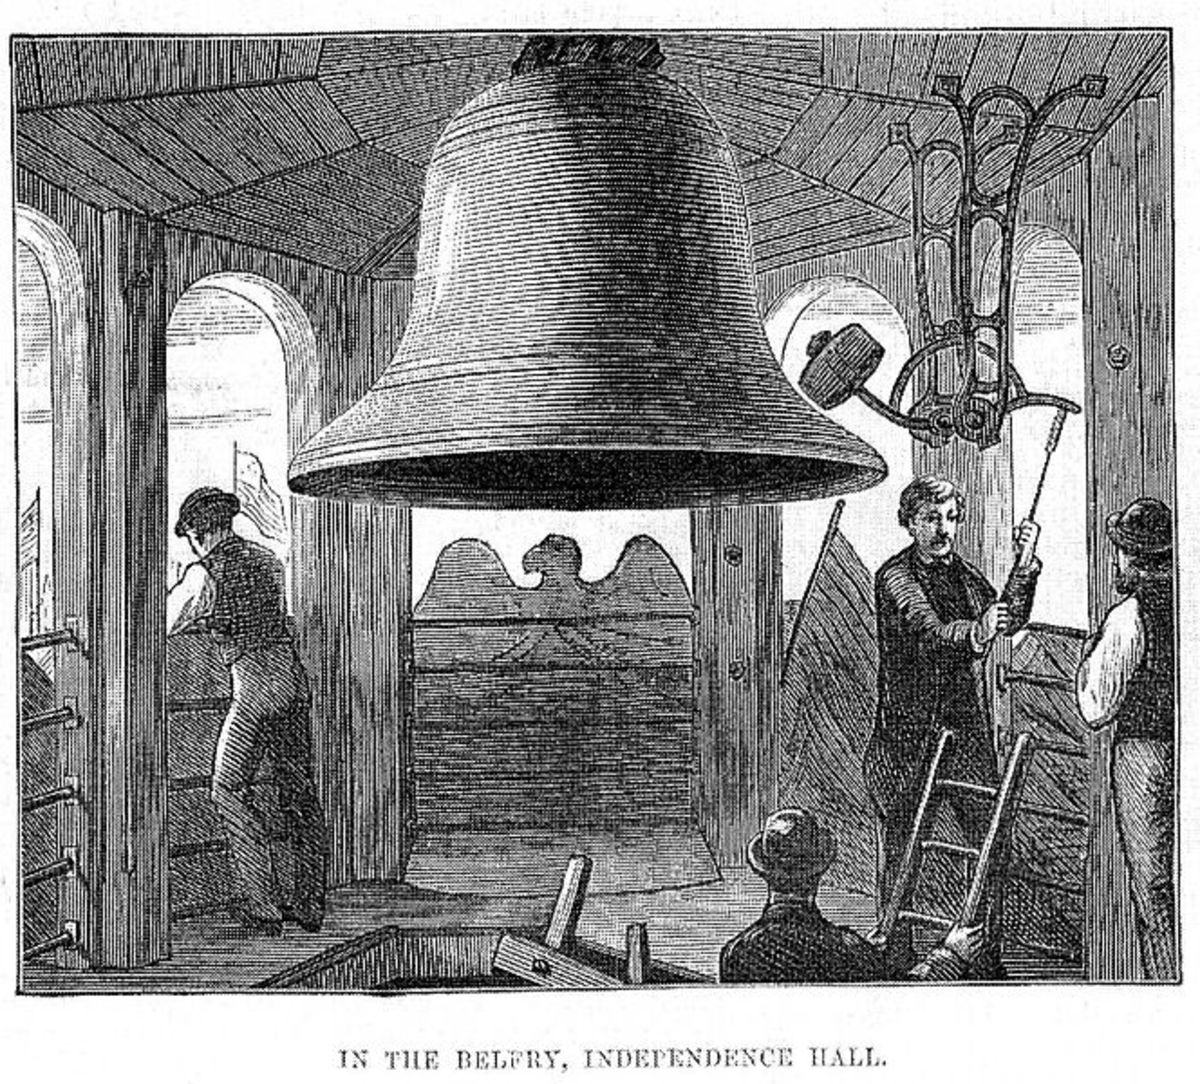 From The Illustrated London News, June 17, 1876.